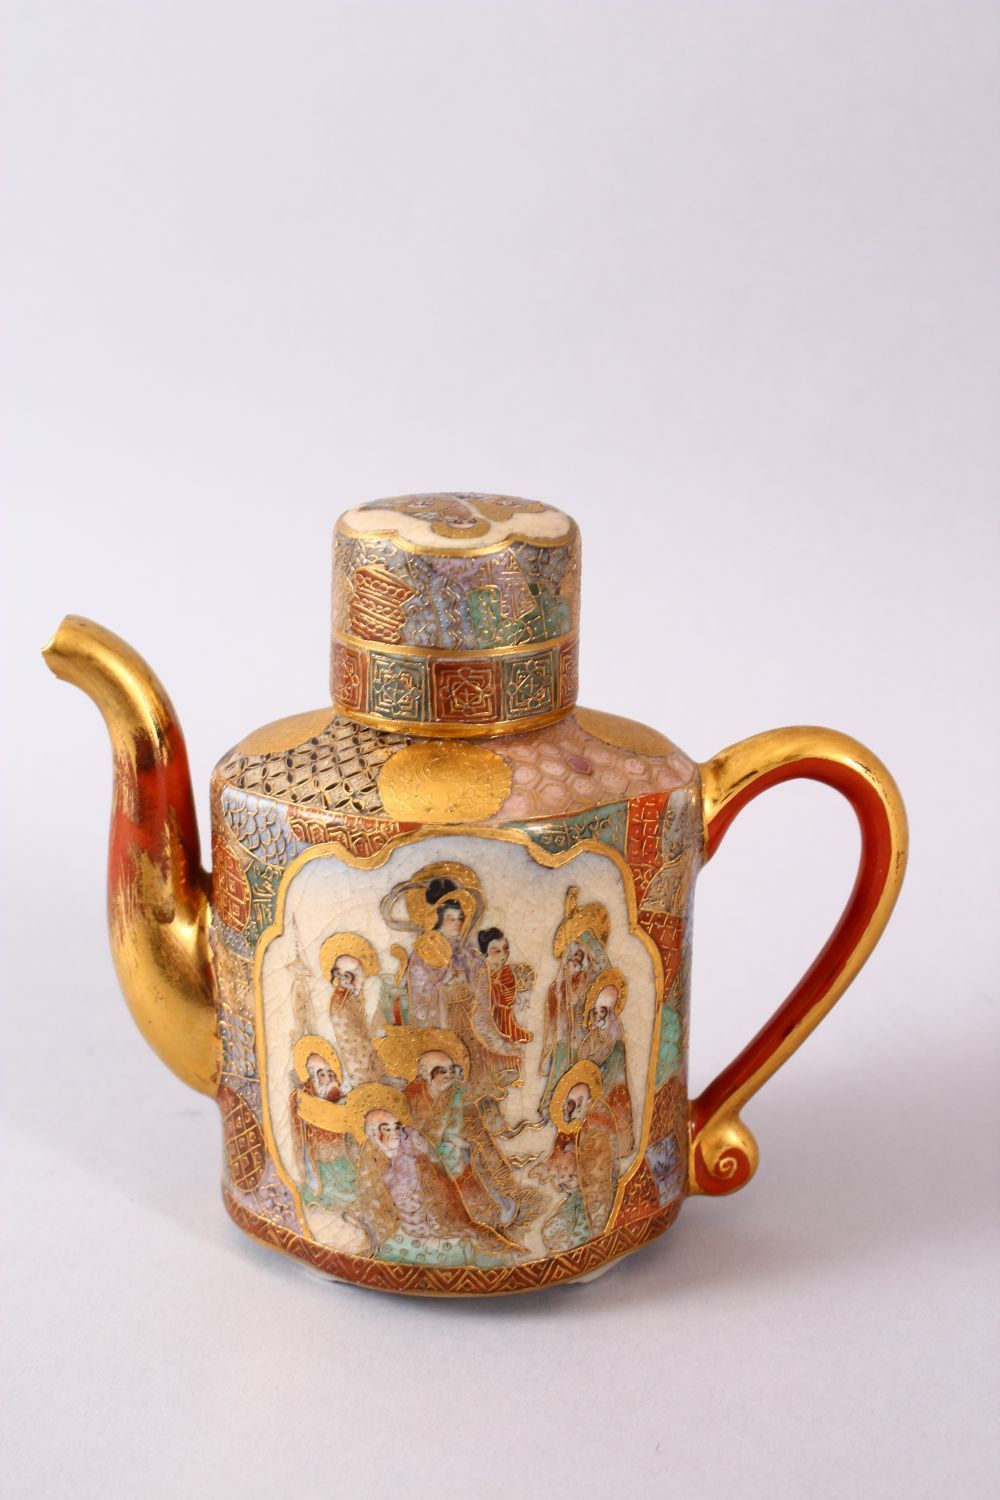 A JAPANESE MEIJI PERIOD SATSUMA TEAPOT & COVER, the body with two panels of immortal figures and - Image 4 of 9